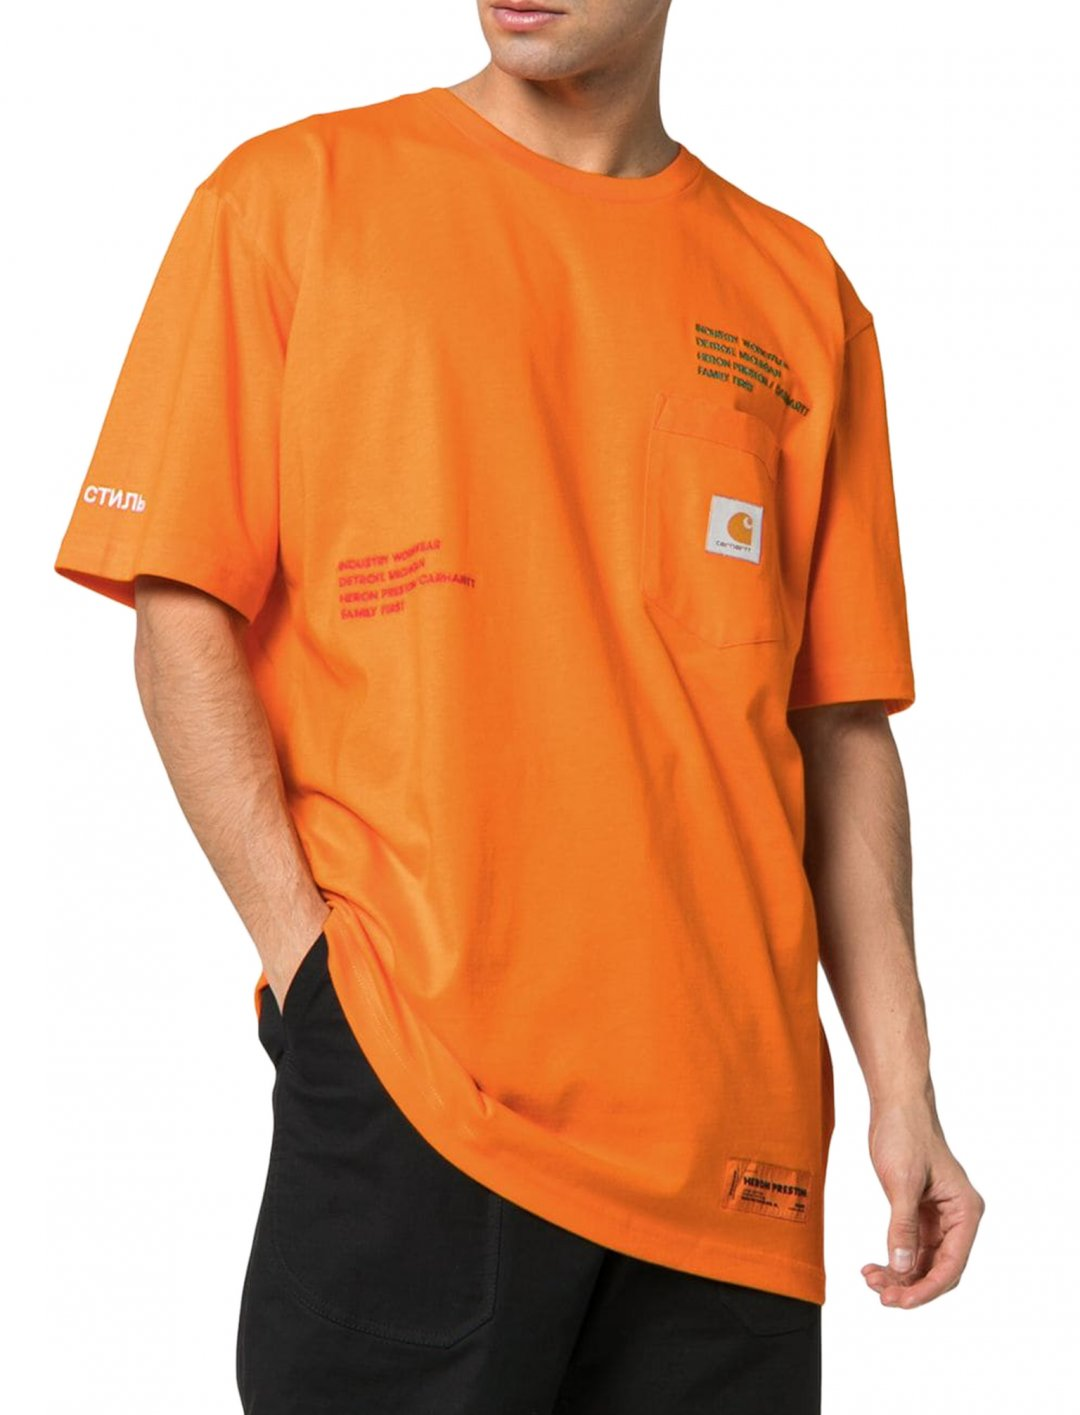 Mahalia's T-Shirt Clothing Heron Preston